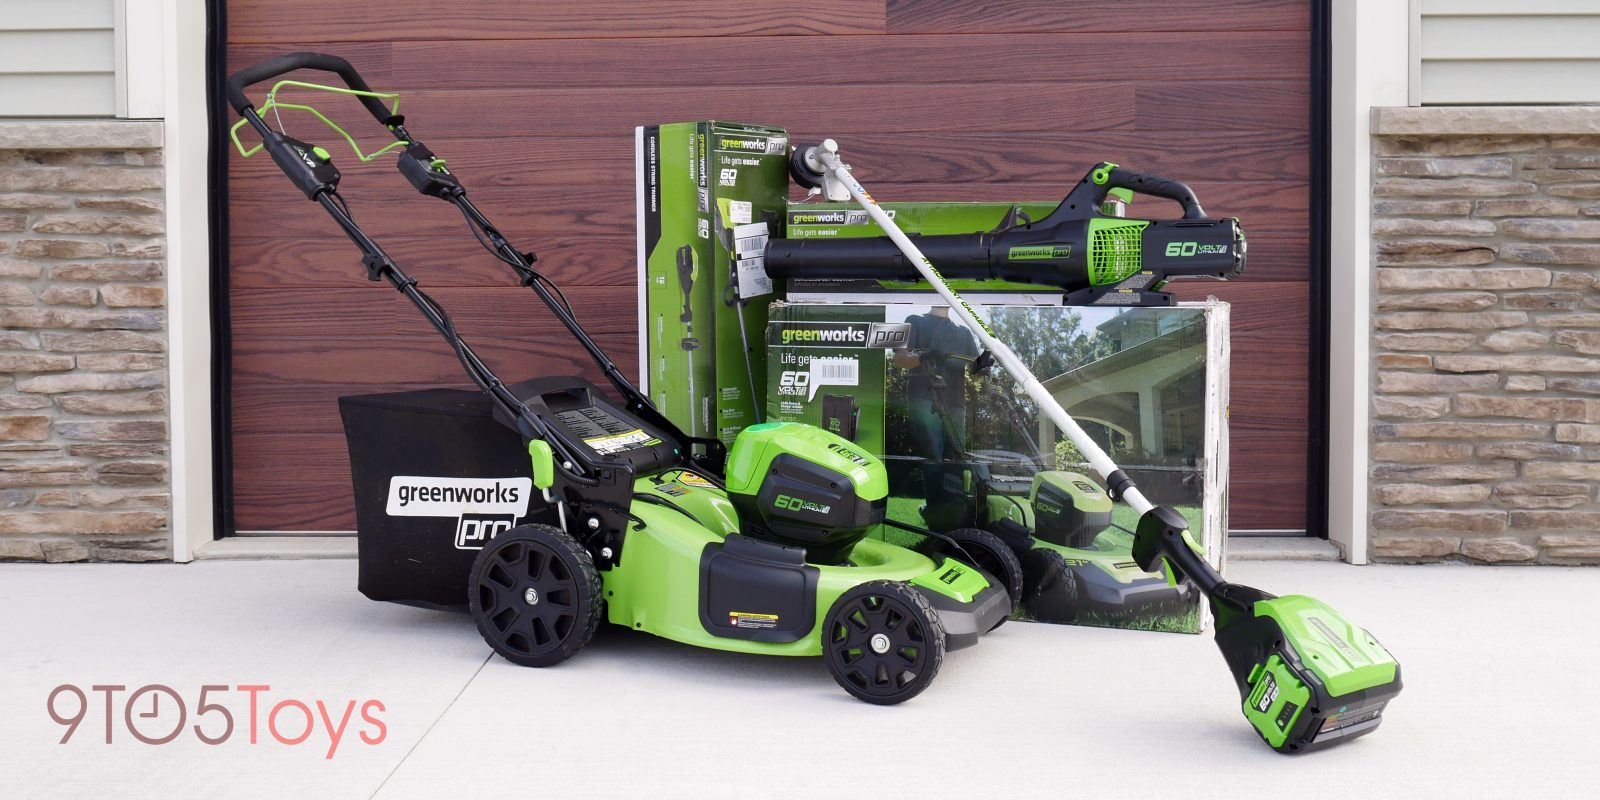 GreenWorks Pro 60V Review: Farewell gas outdoor tools, I'm